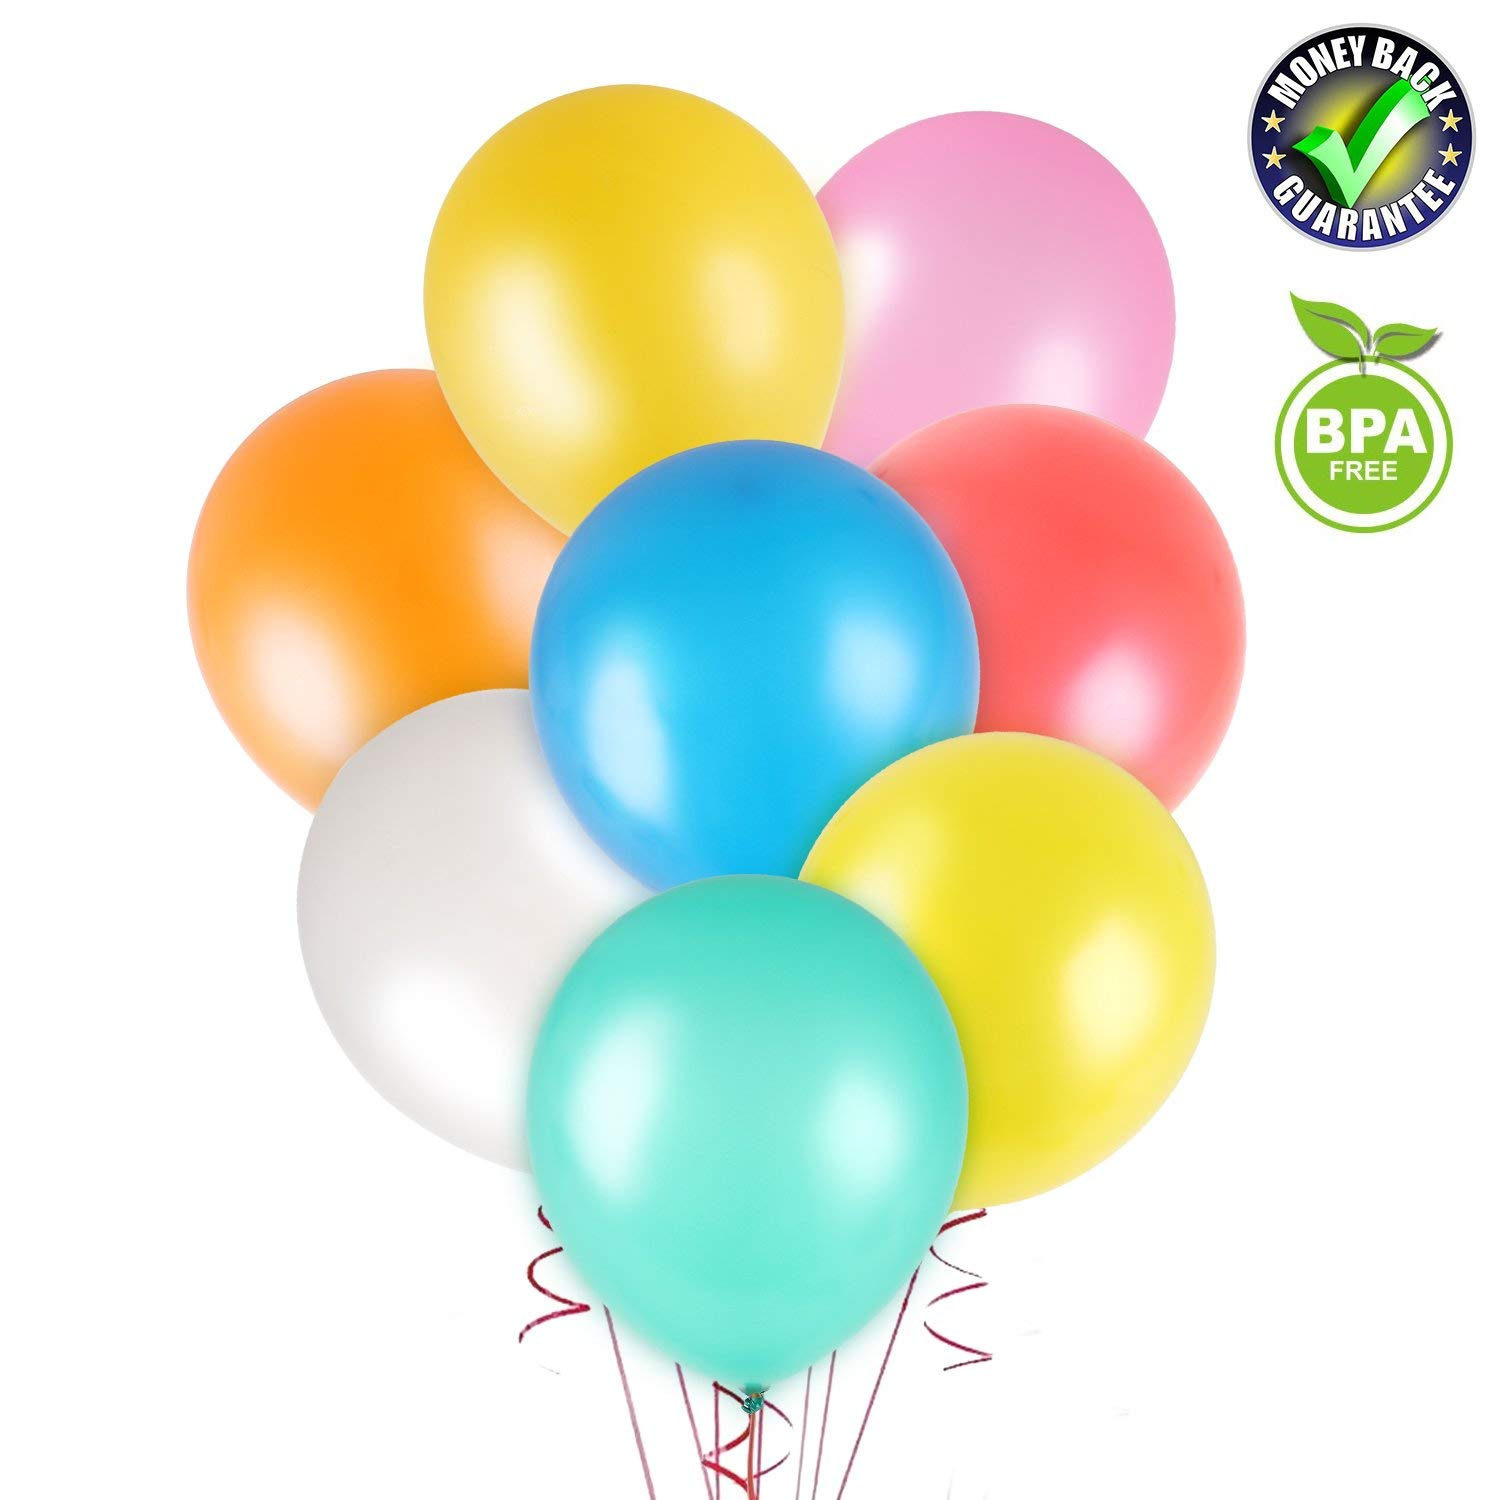 Balloons for Party, Rainbow Birthday Balloons 12 inch 100 pcs